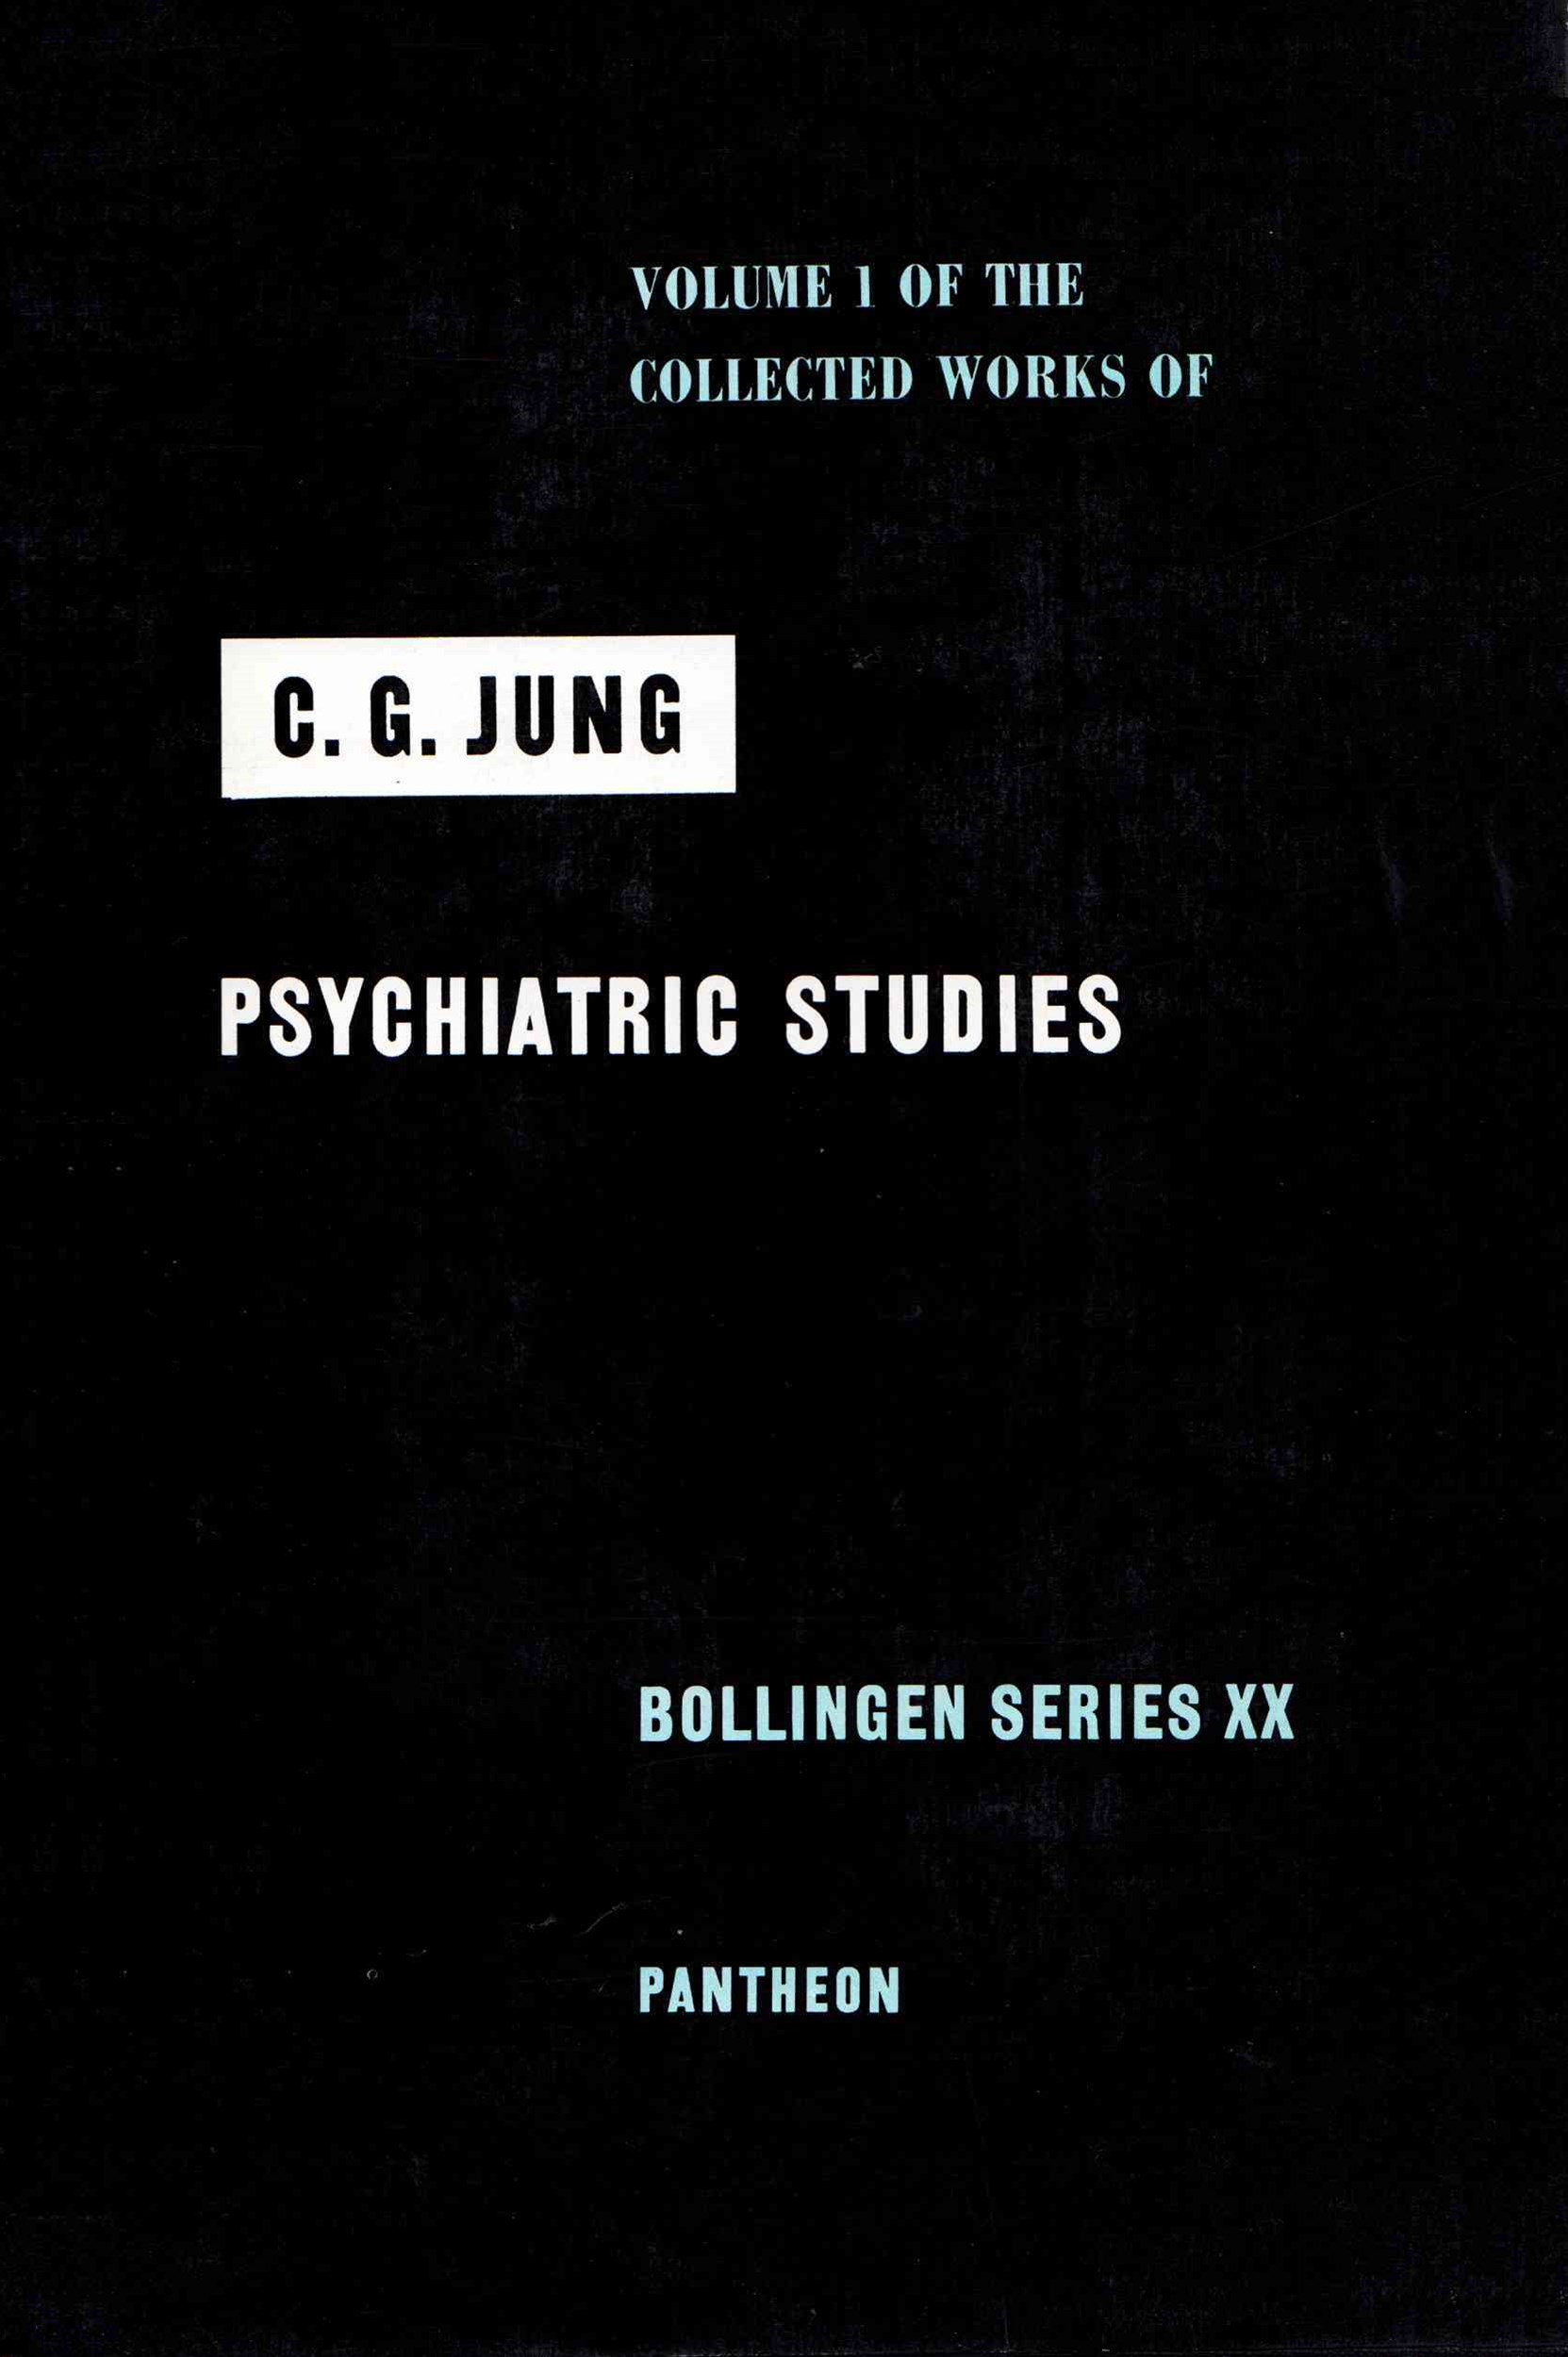 The Collected Works of C.G. Jung: Psychiatric Studies